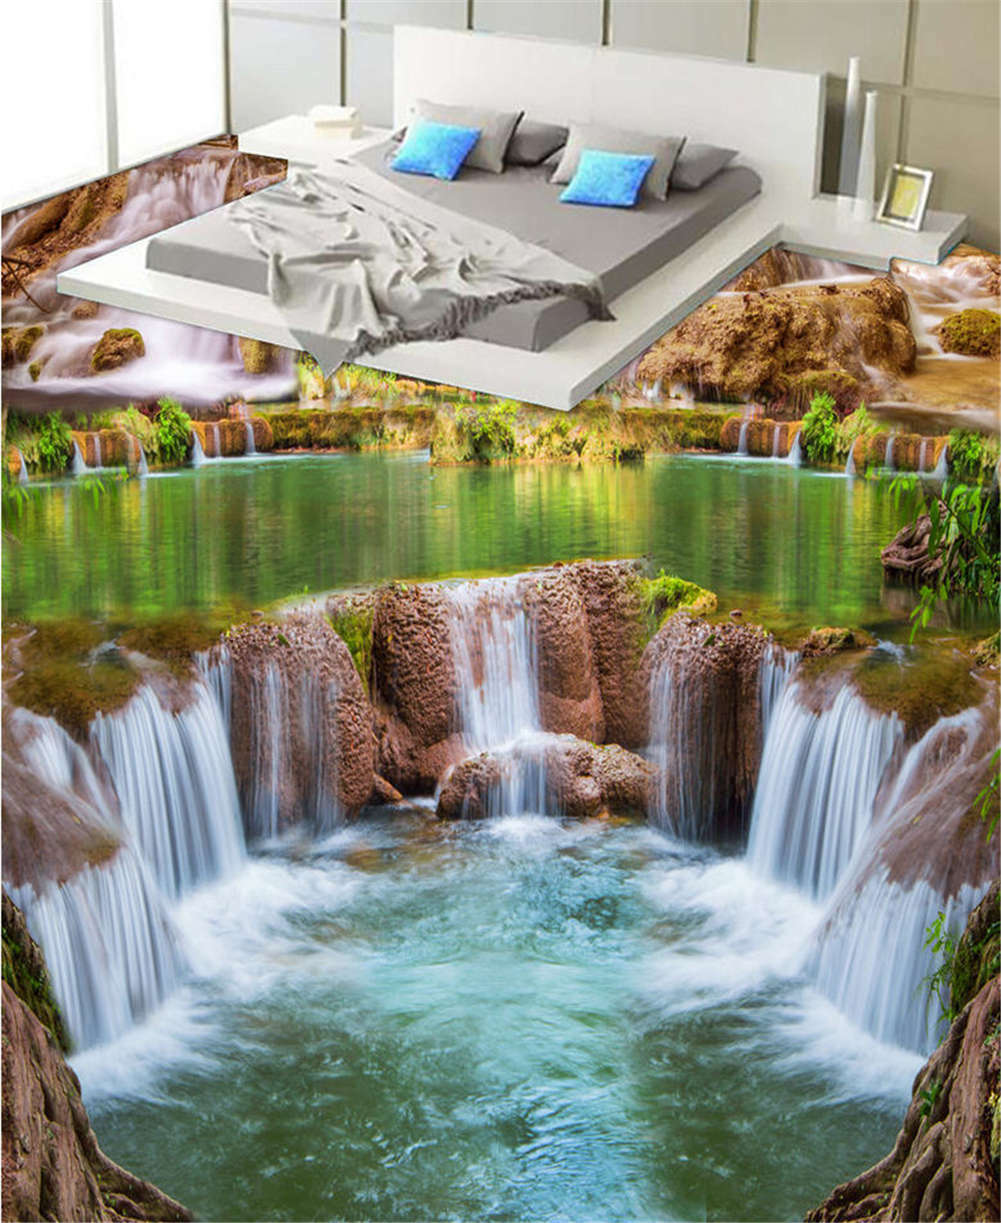 Submissive Water 3D Floor Mural Photo Flooring Wallpaper Home Print Decoration